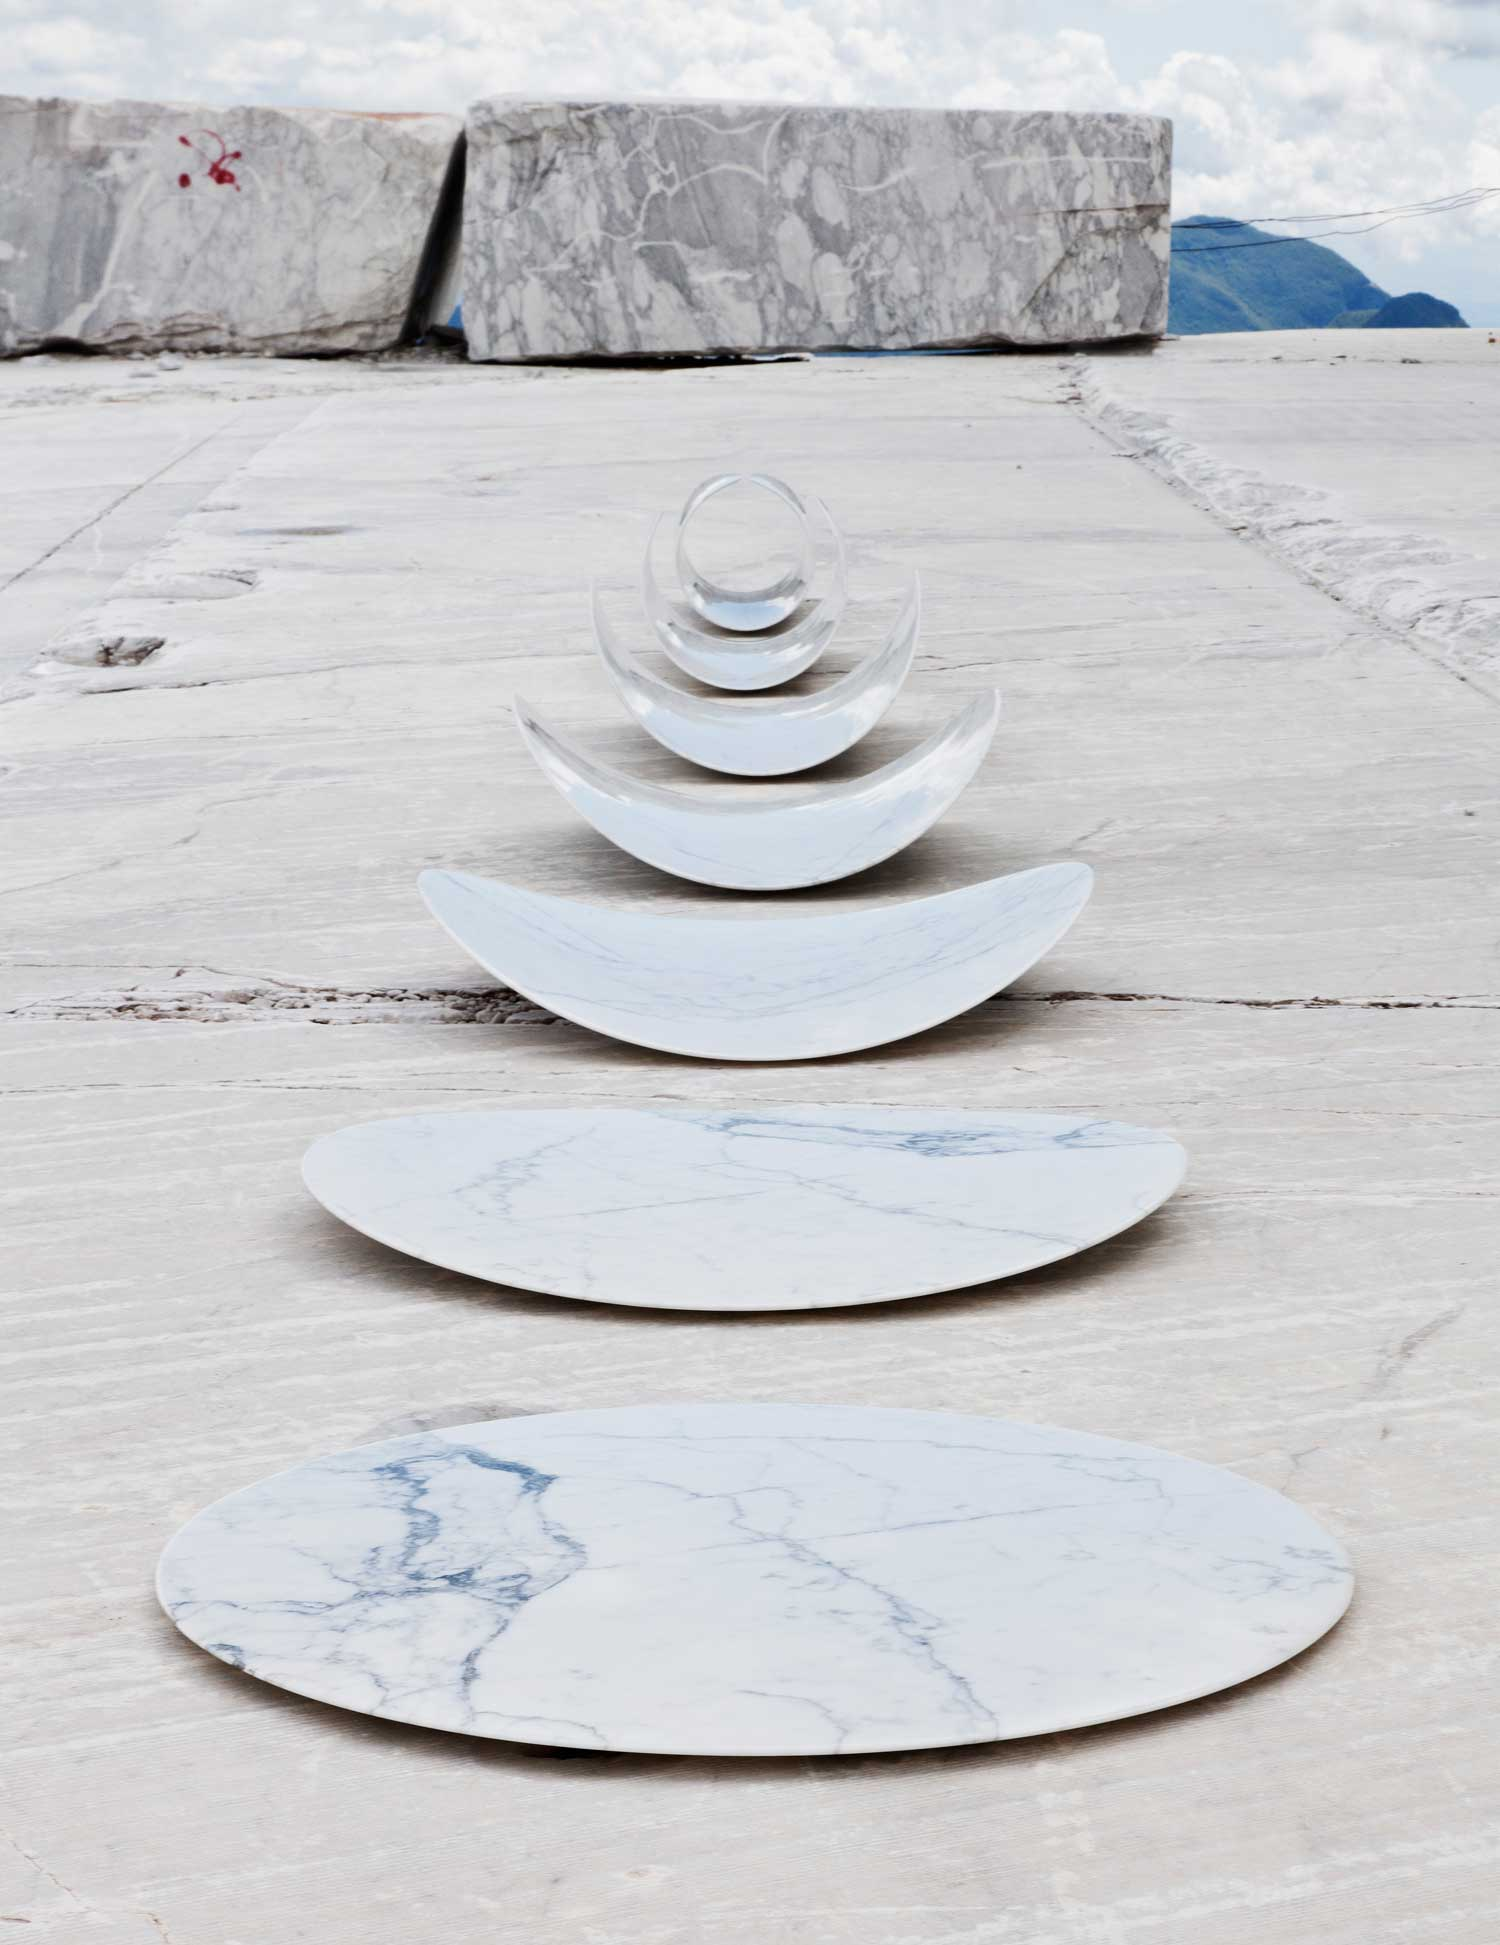 Miracle Chips by Michael Anastassiades at Design Days Dubai 2014 | Yellowtrace